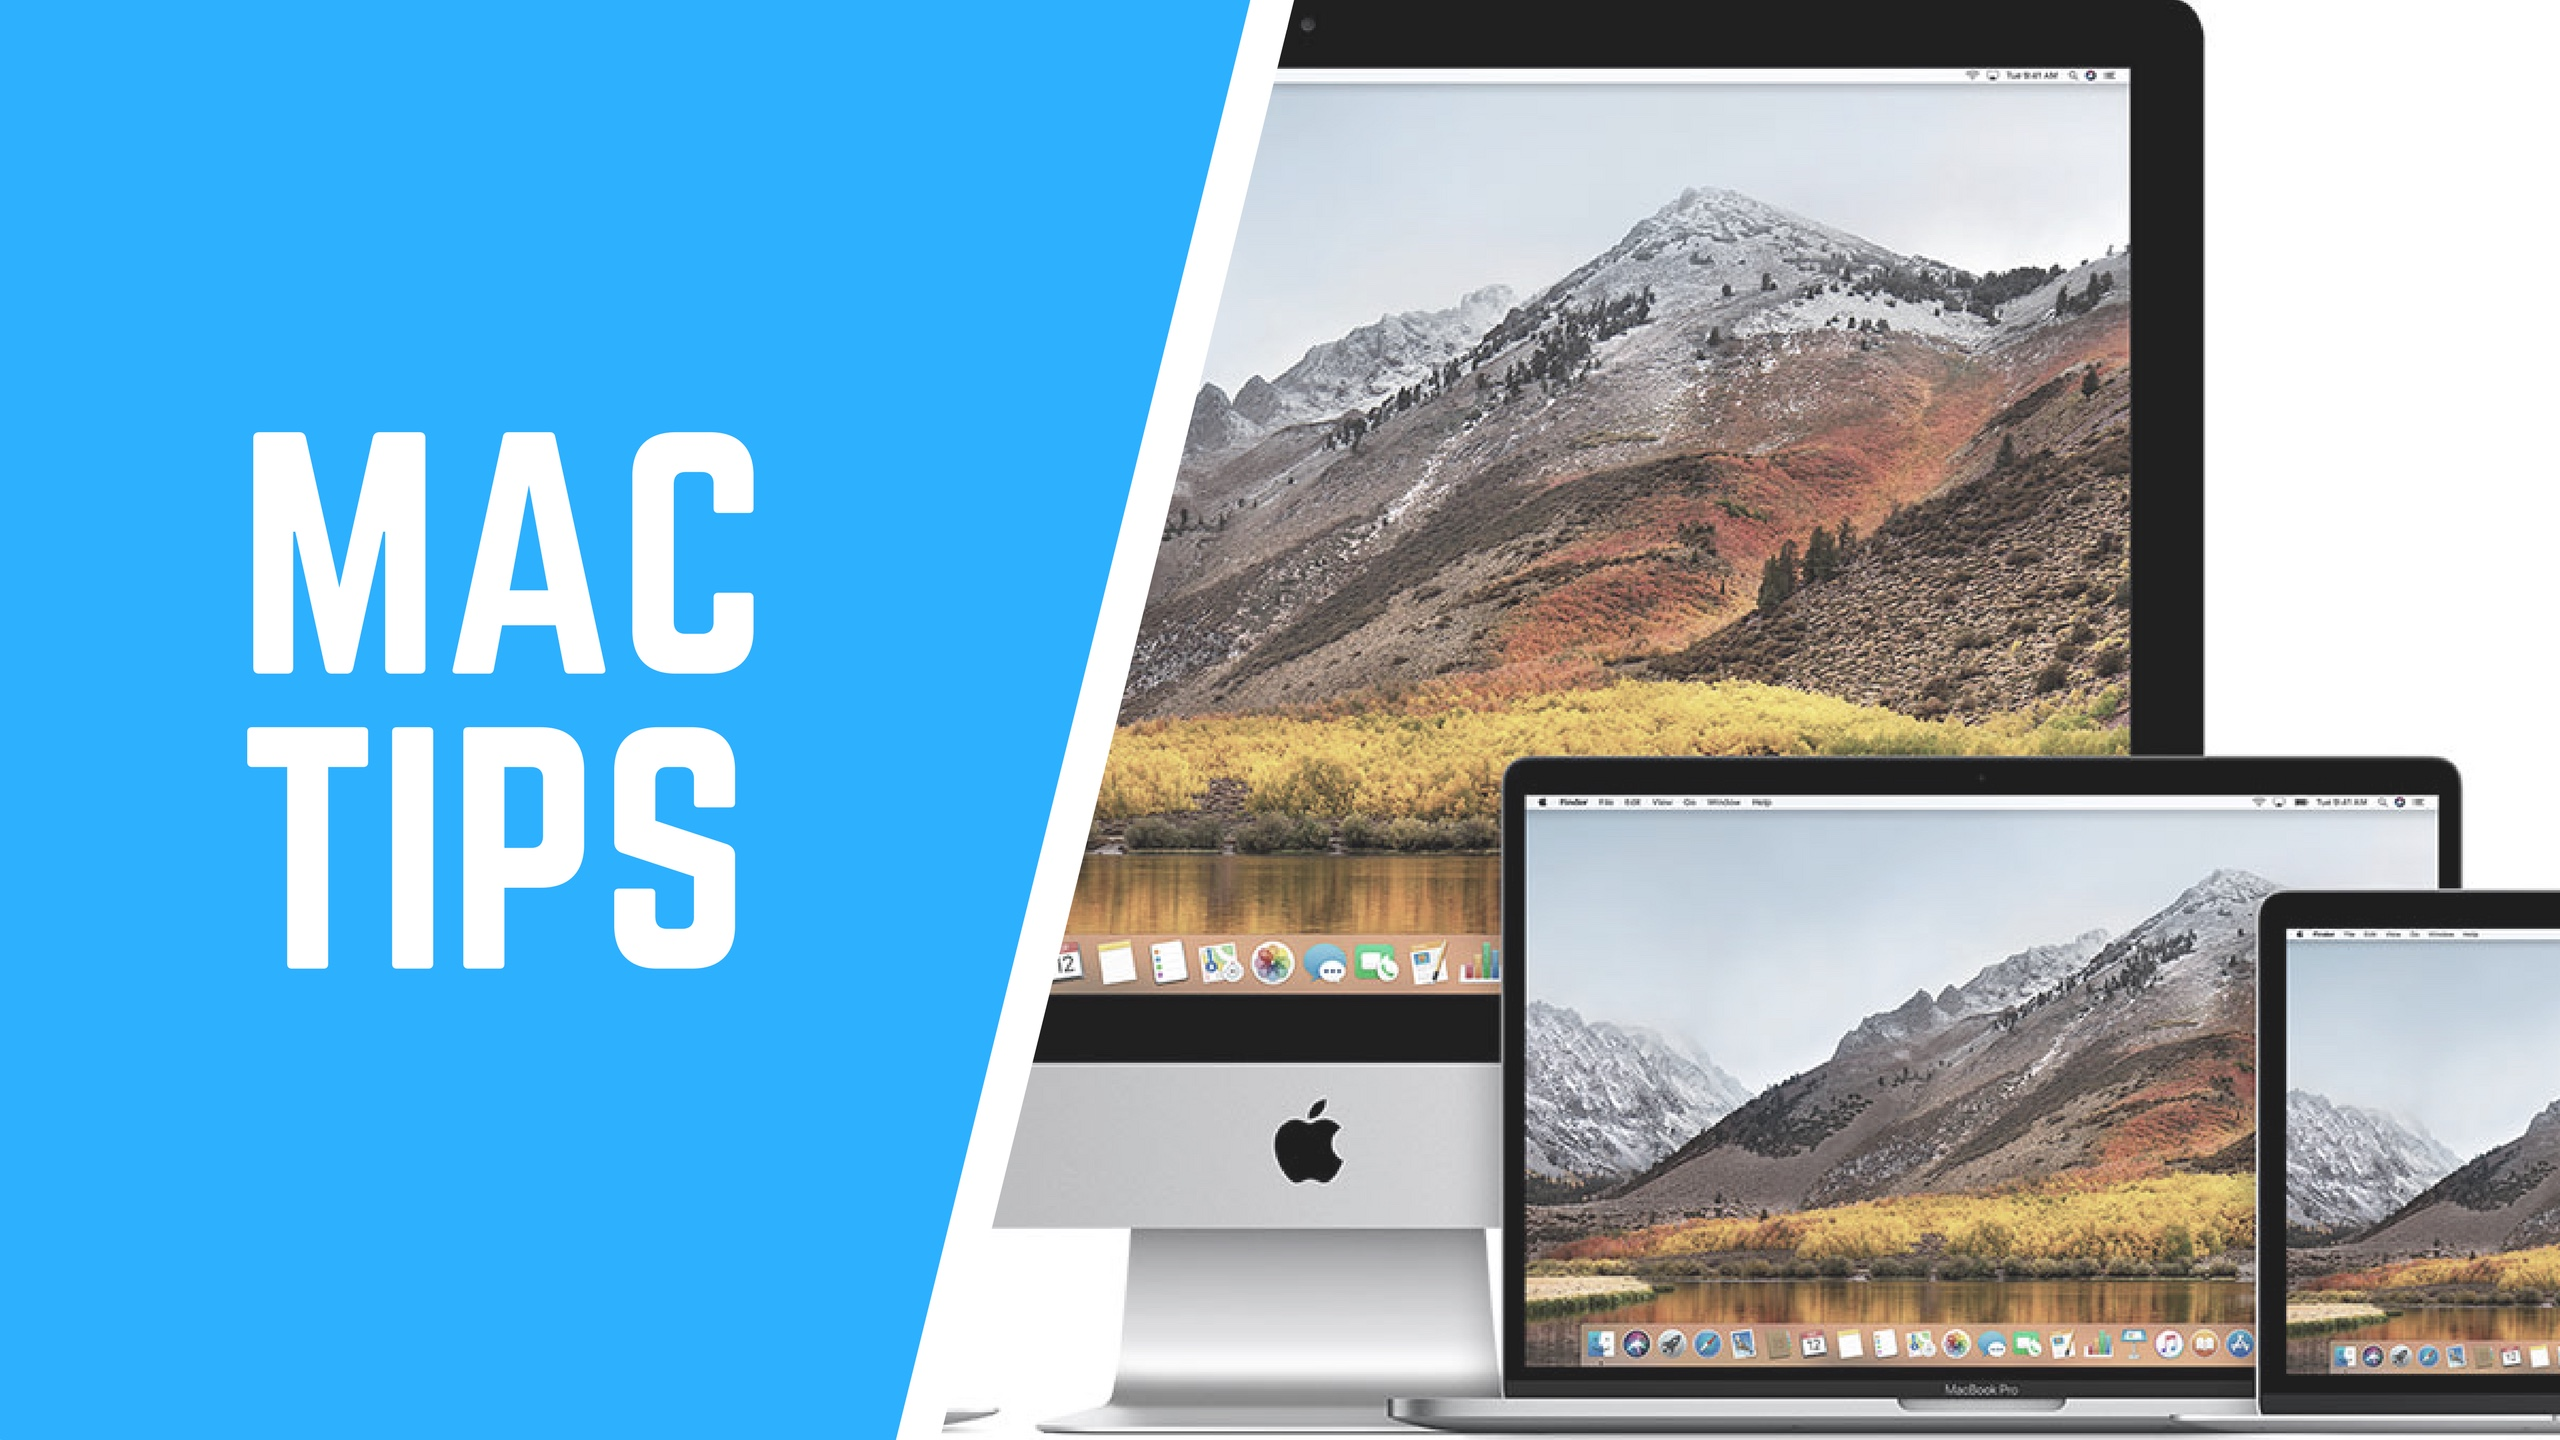 Mac Tips banners